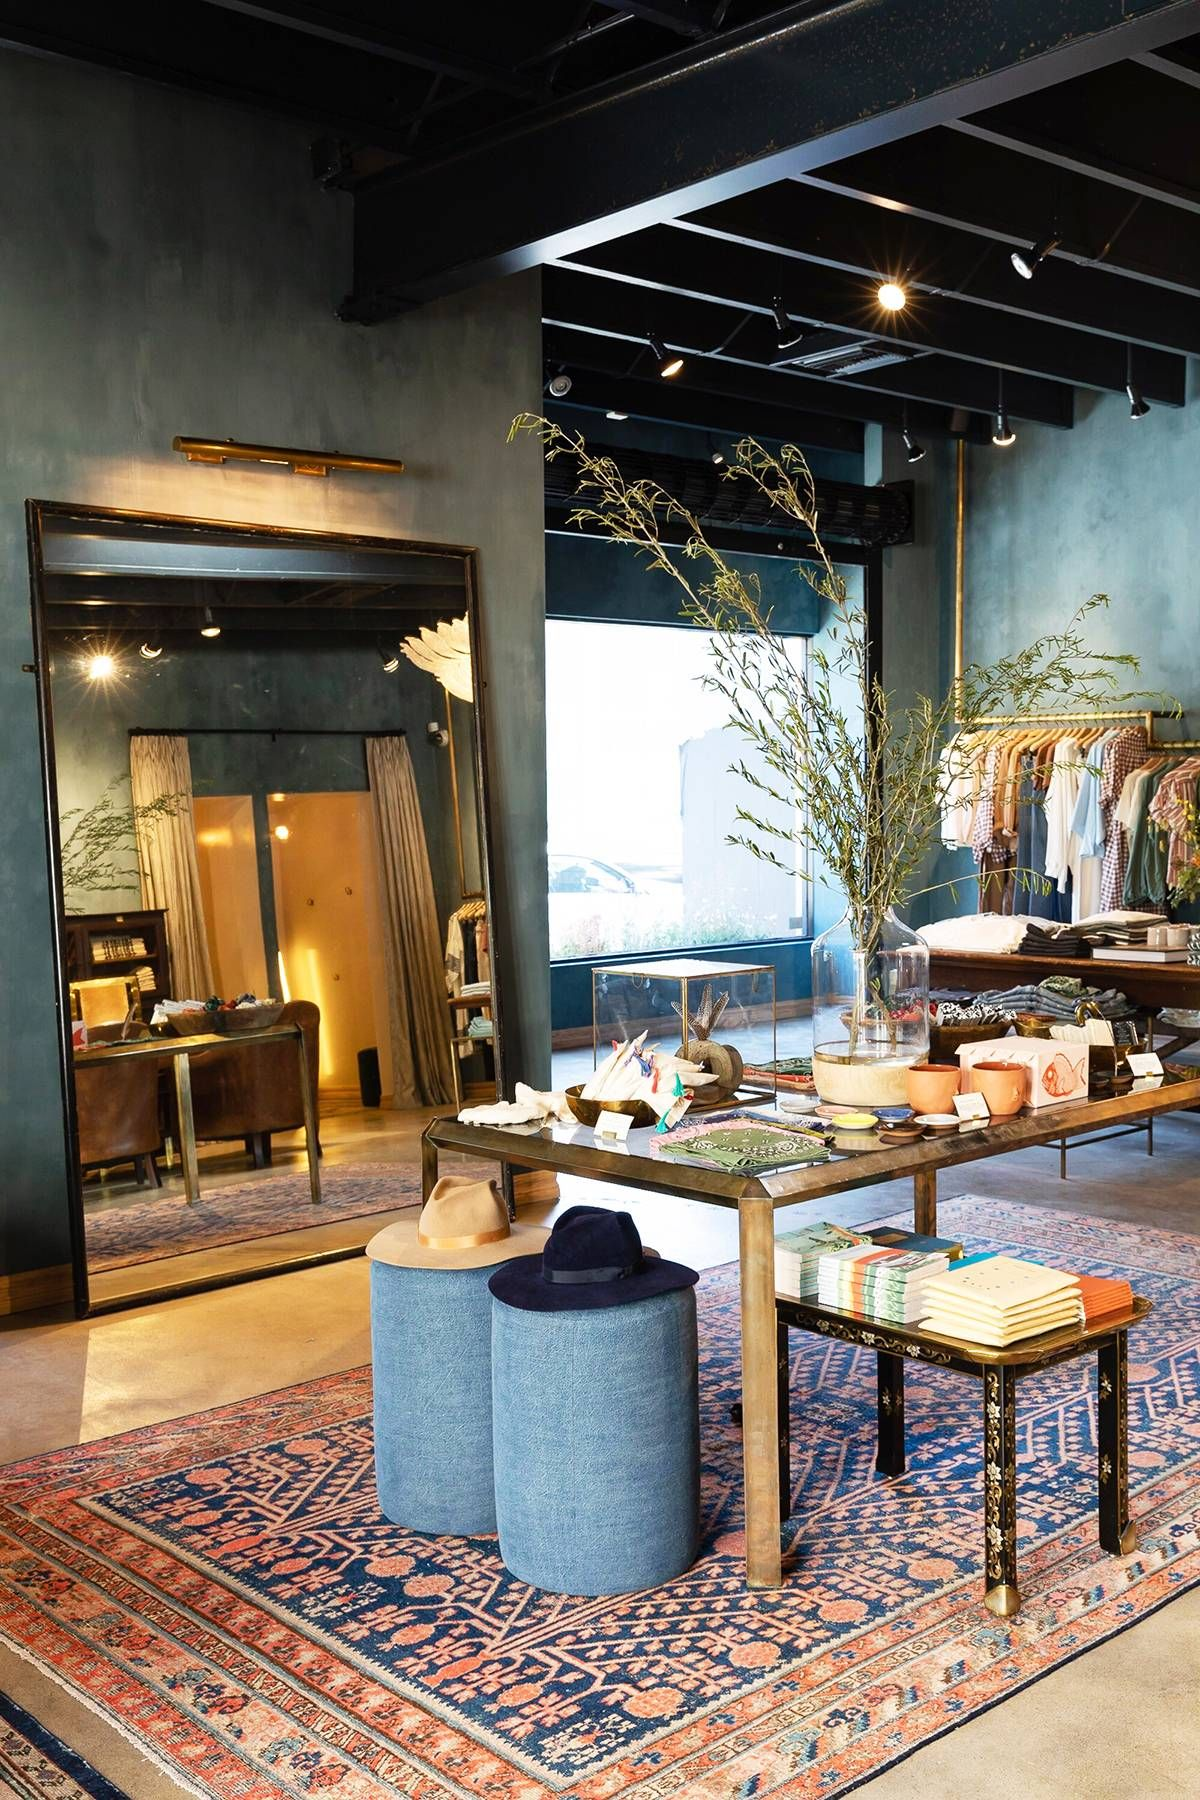 This Boho L.A. Clothing Store Is Giving Us Major Home